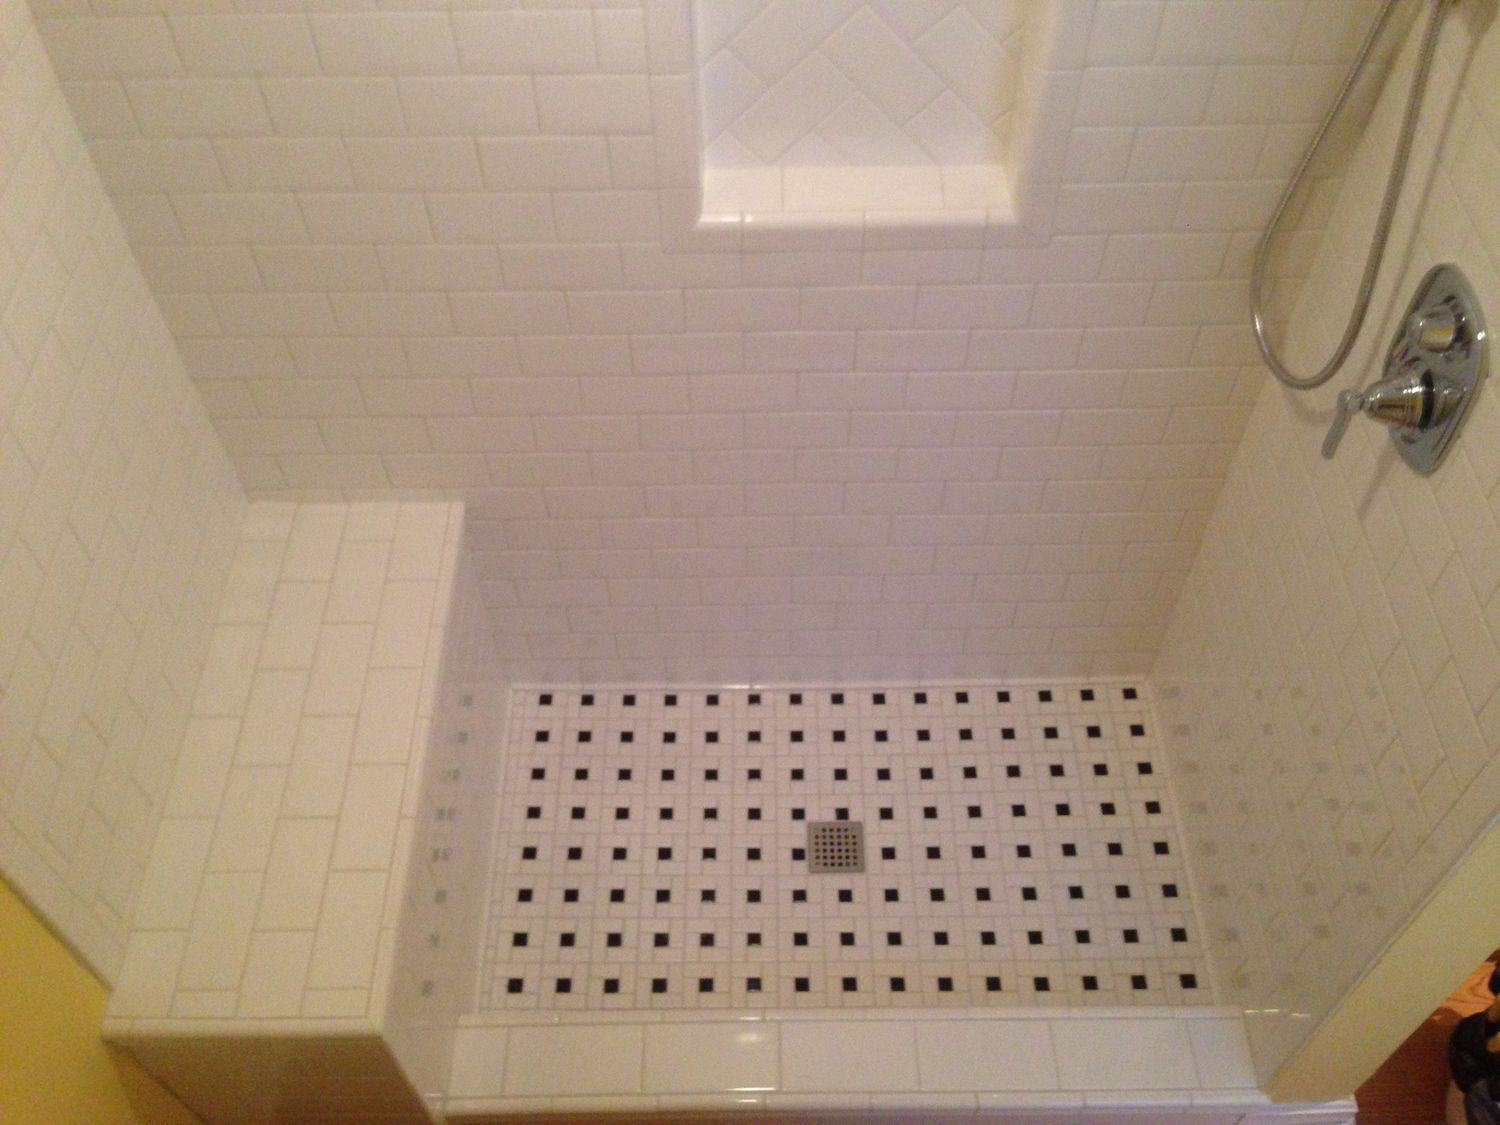 Converting Tub To Walk In Shower Tub To Shower Conversion